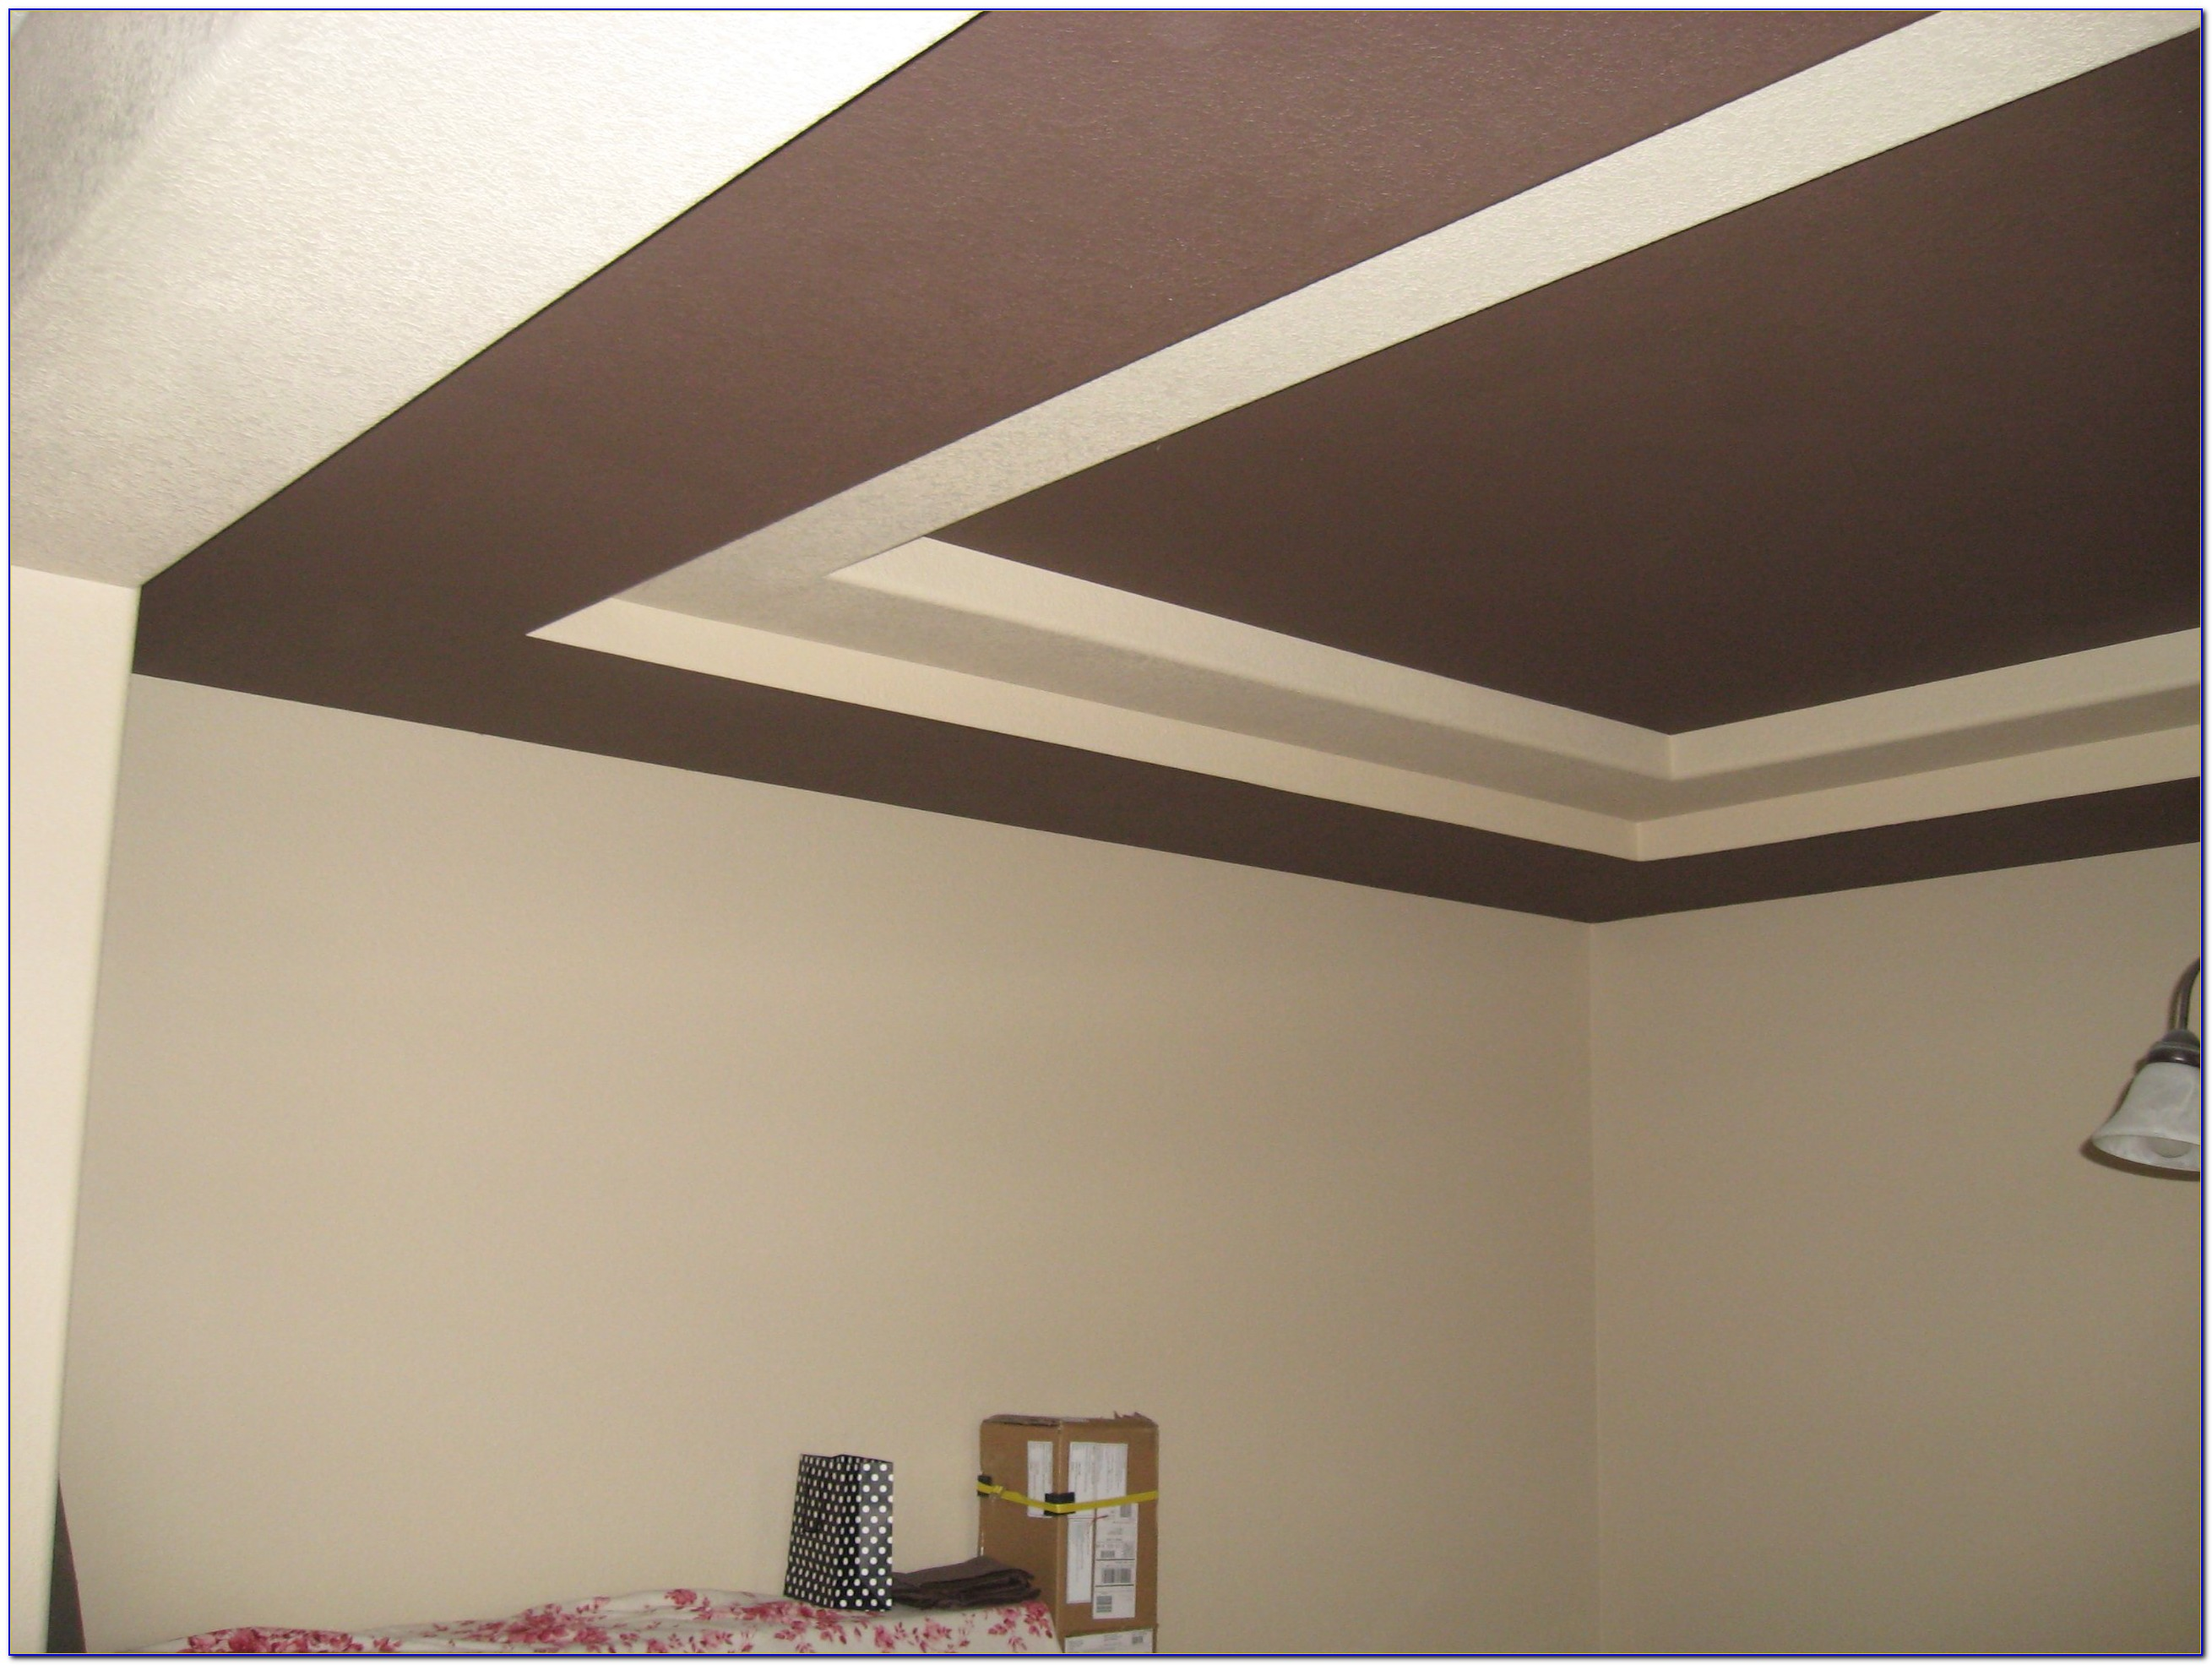 Top Rated Ceiling Paint 2016